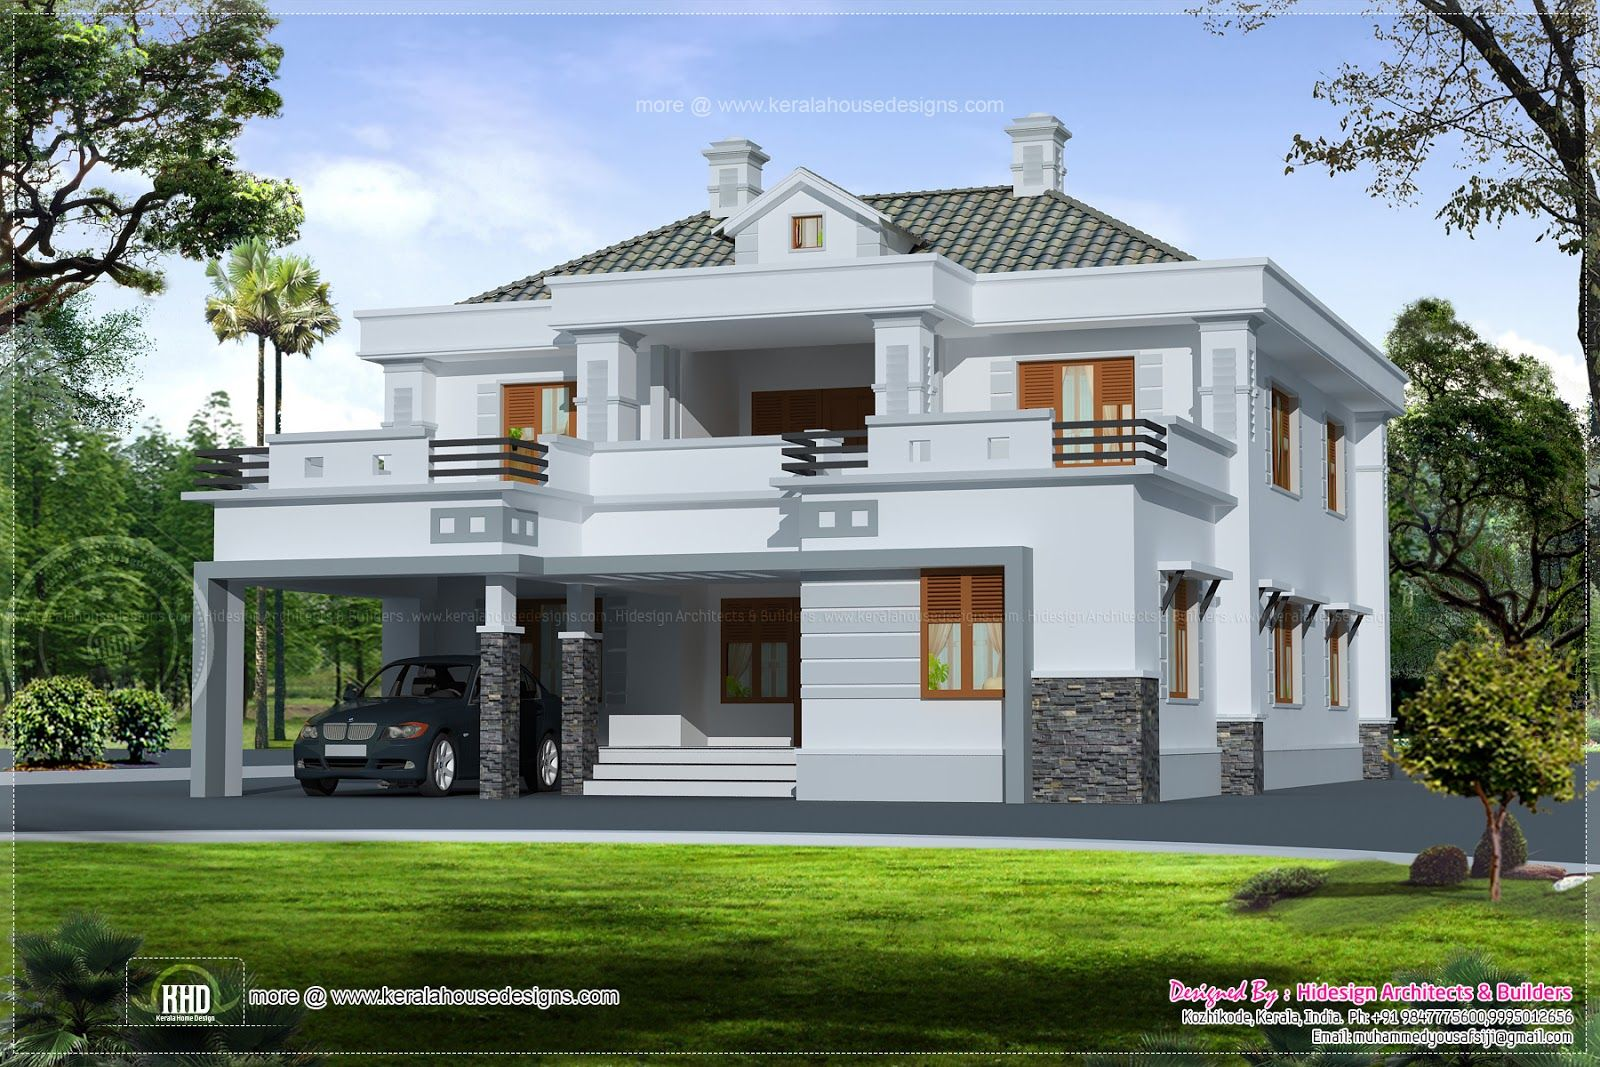 Ordinary 1129 Sq Ft Single Floor Home Part - 12: Small House Plan House Floor Plans Modern Double Storey House Plans Kerala  Style Single Floor House